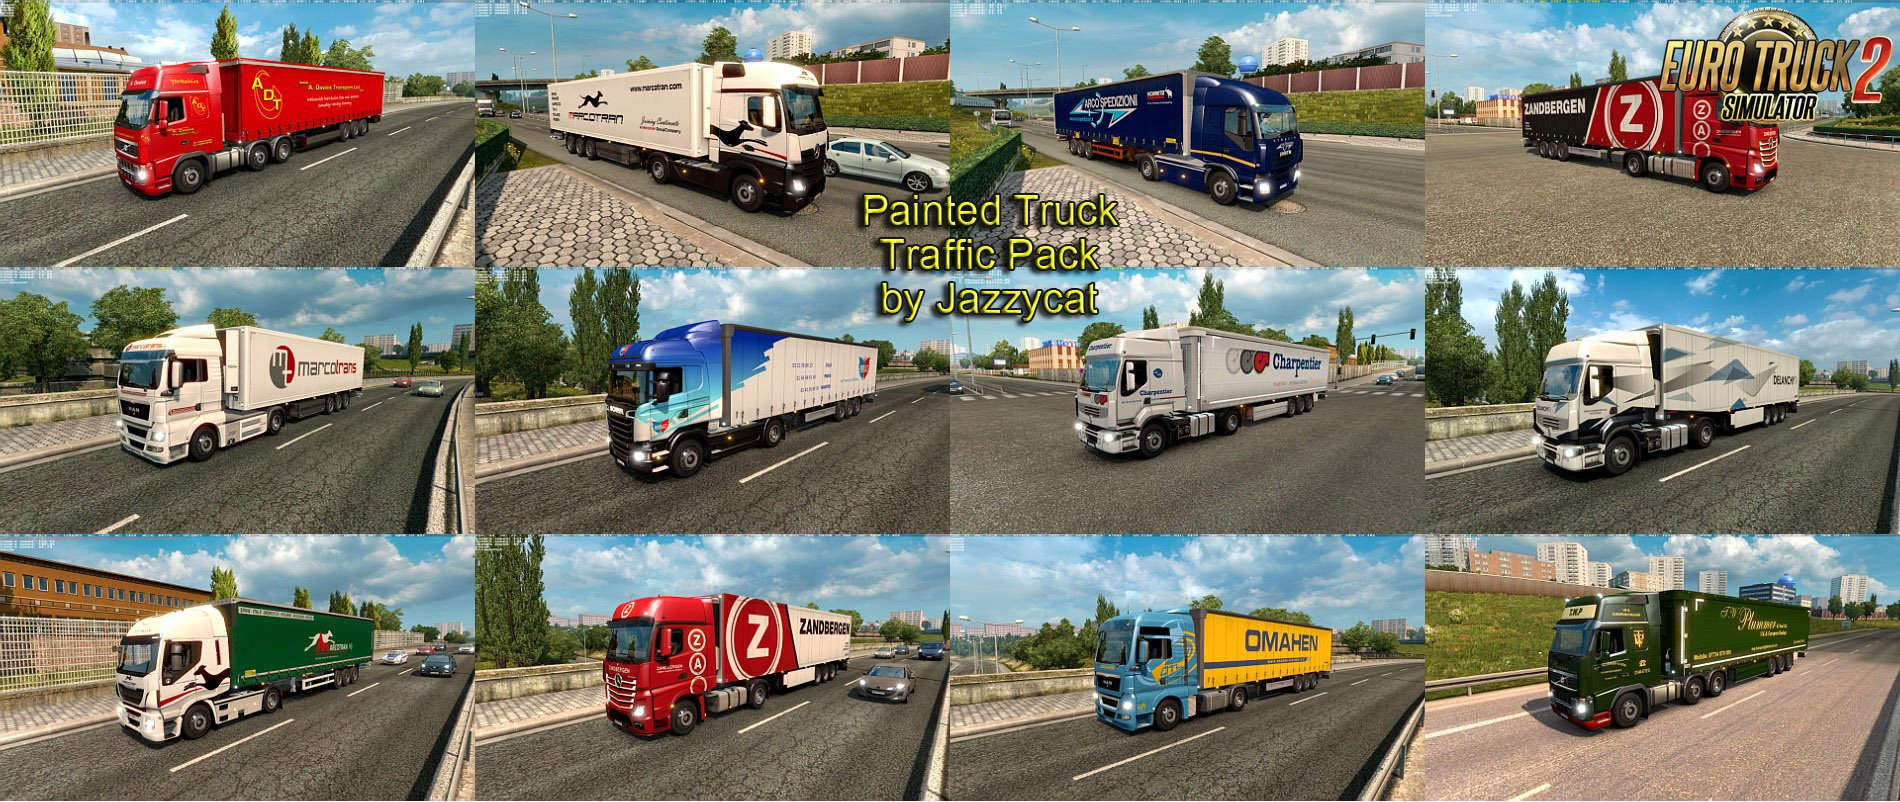 Painted Truck Traffic Pack v3.4 by Jazzycat [1.27.x]